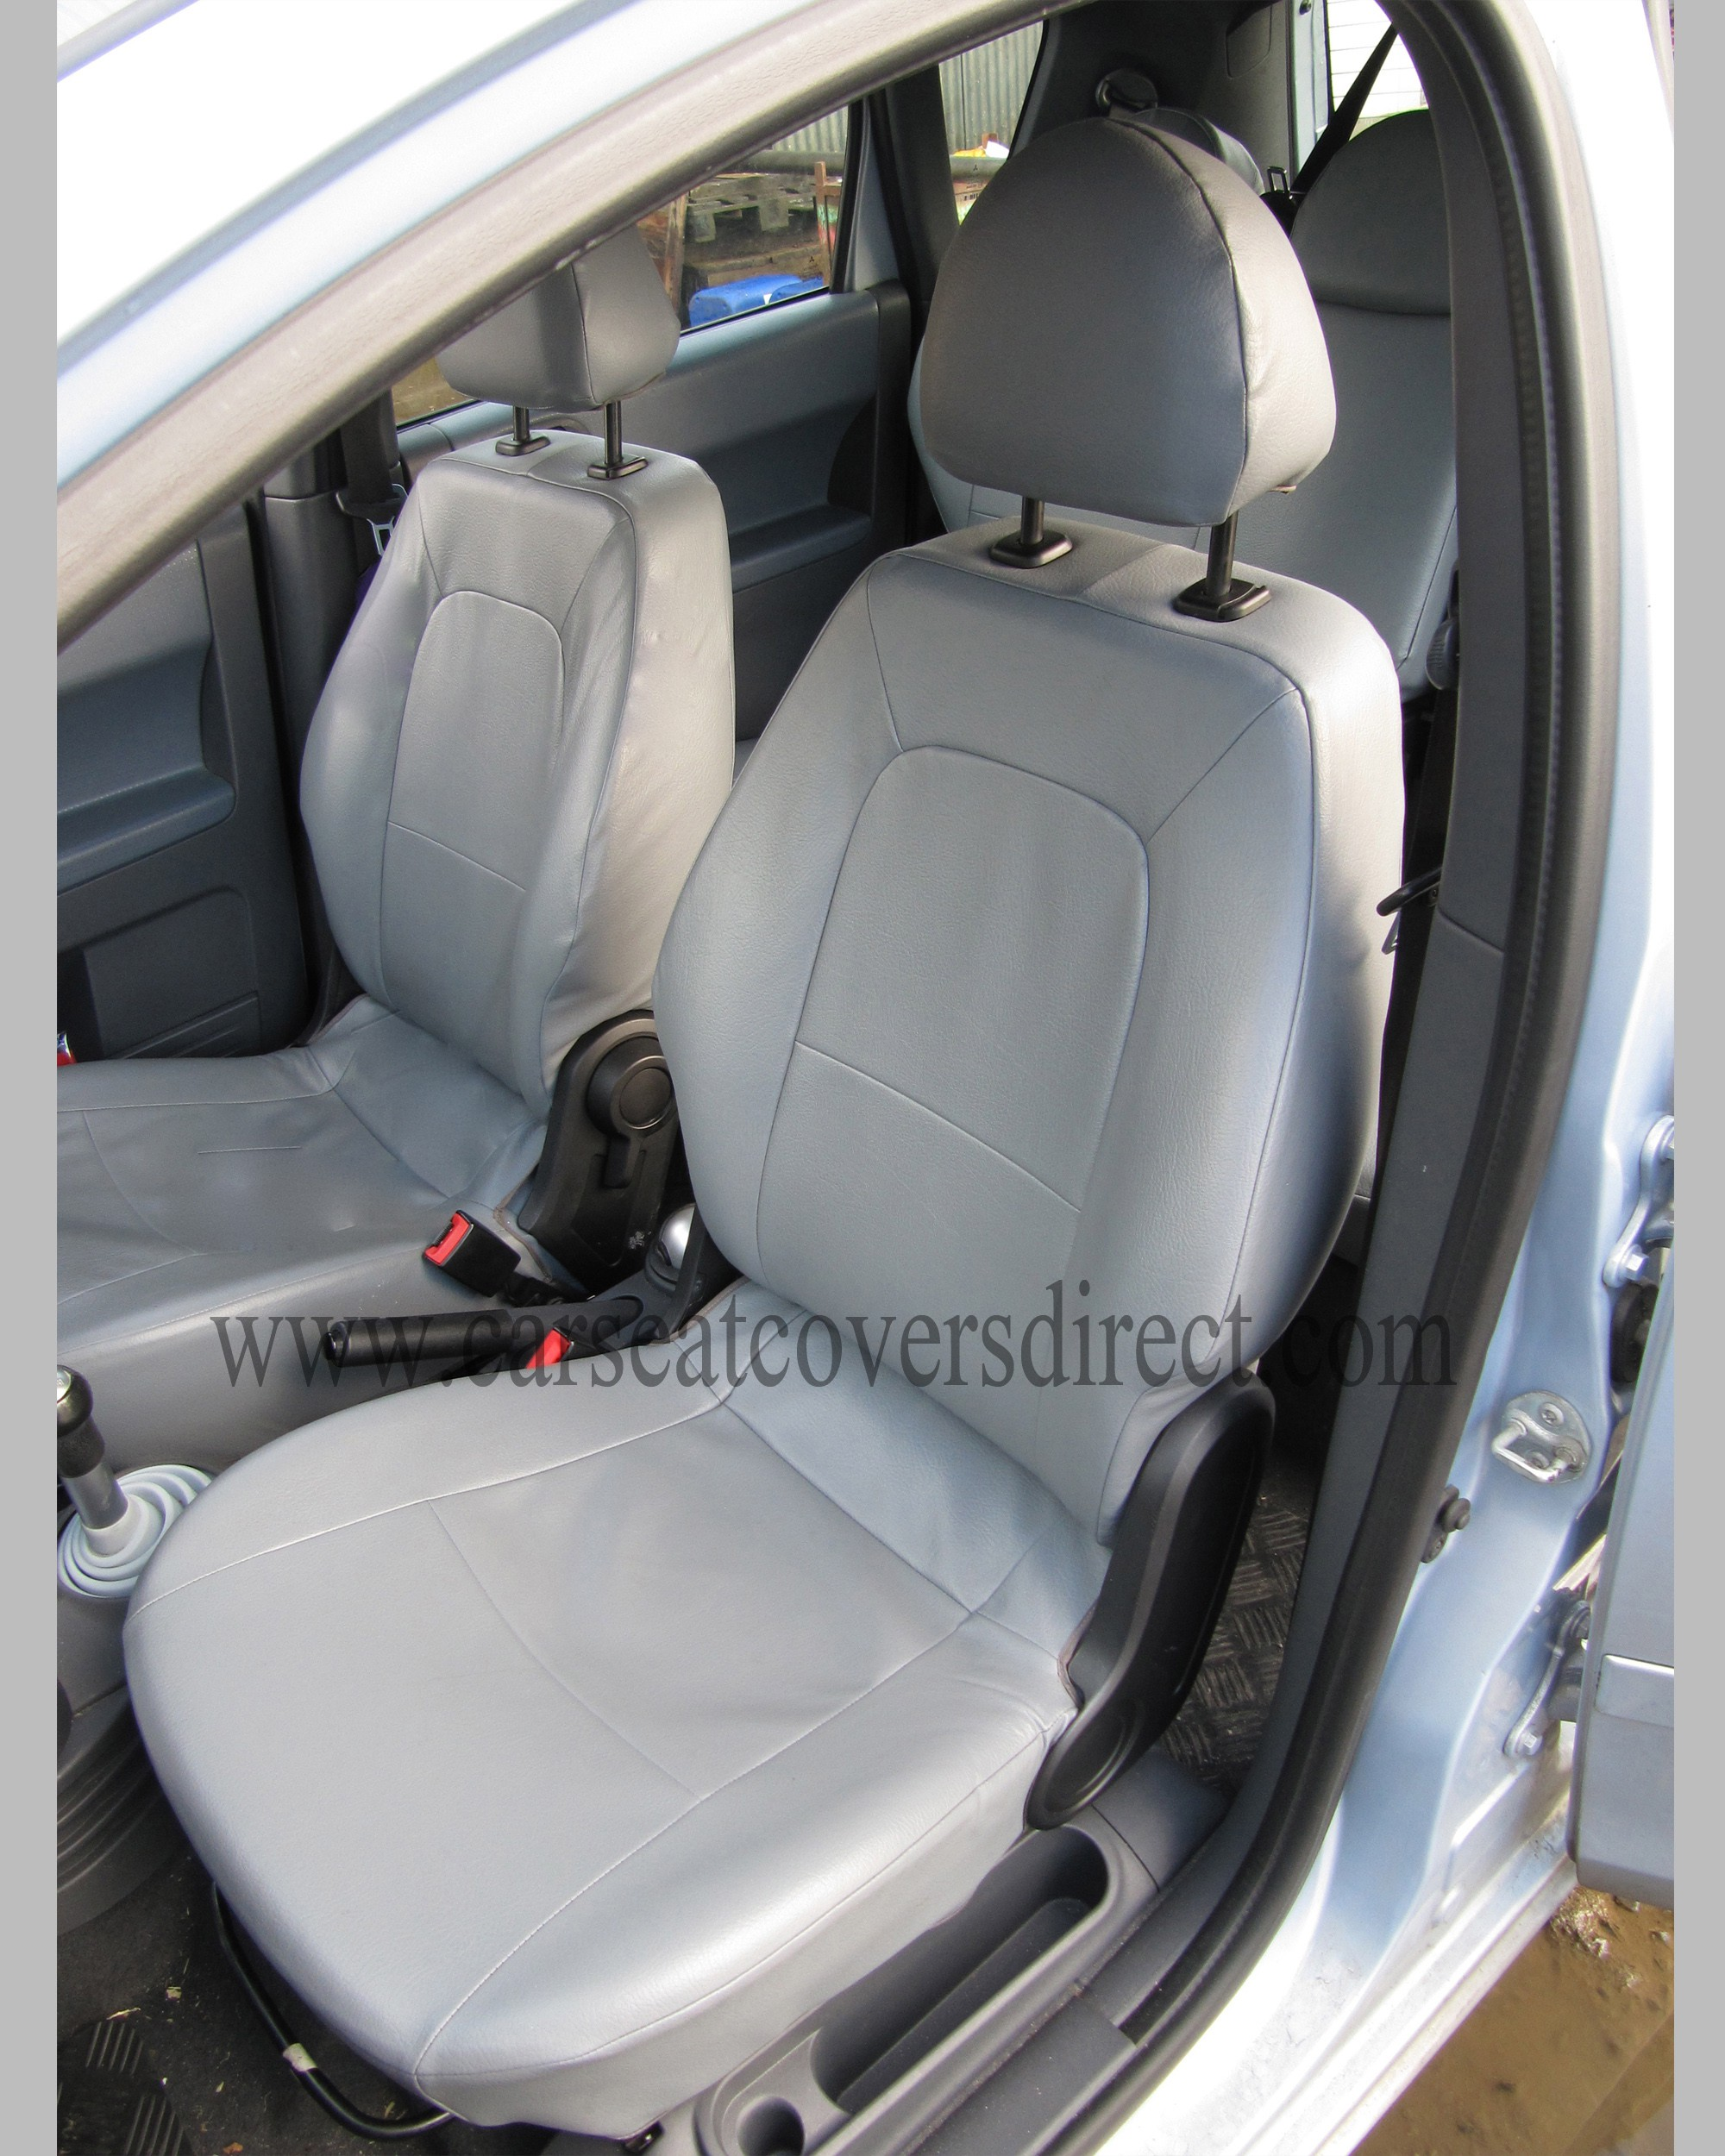 MITSUBISHI COLT 7TH GEN Grey Seat Covers